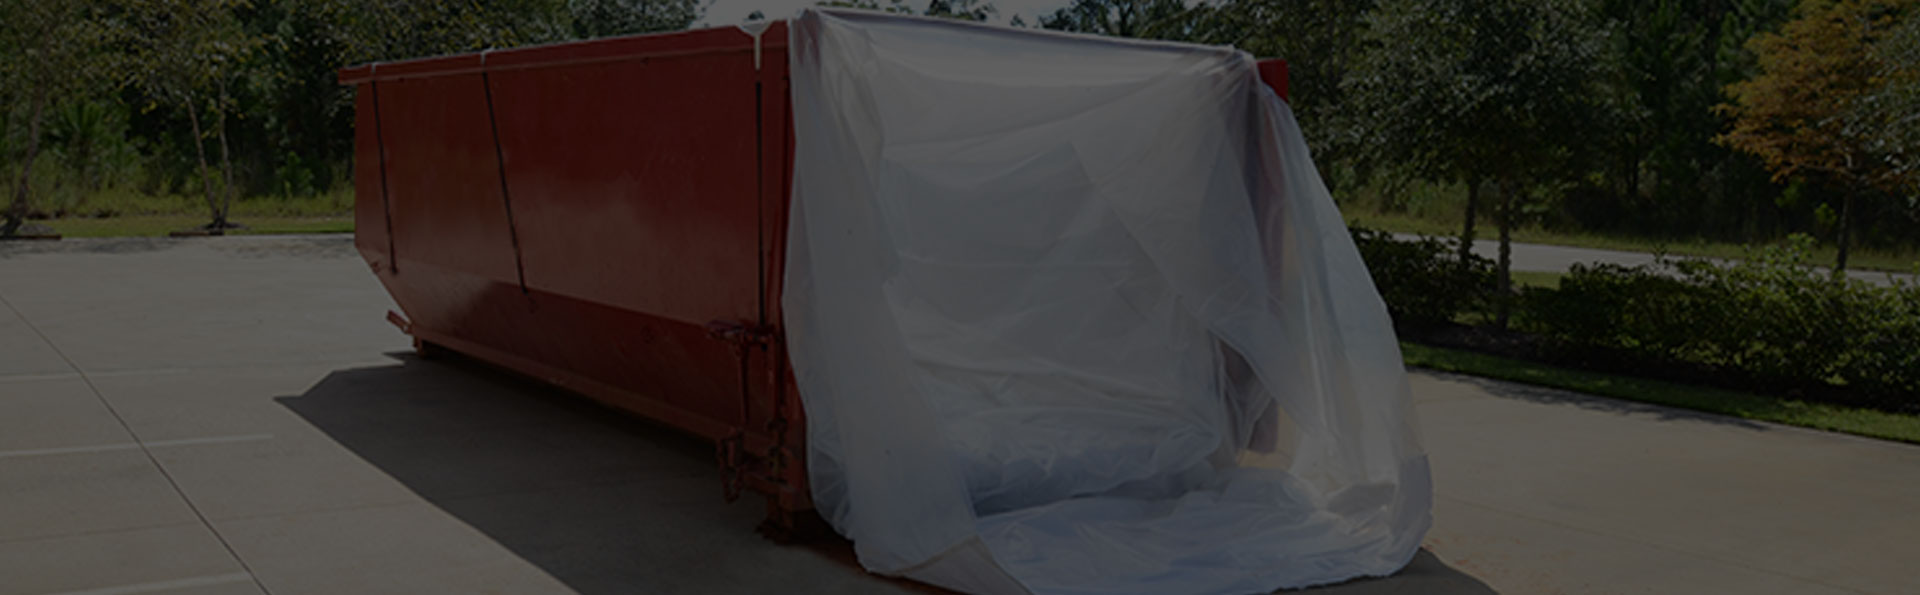 get a quote on a hazardous waste bag used in vacuum boxes